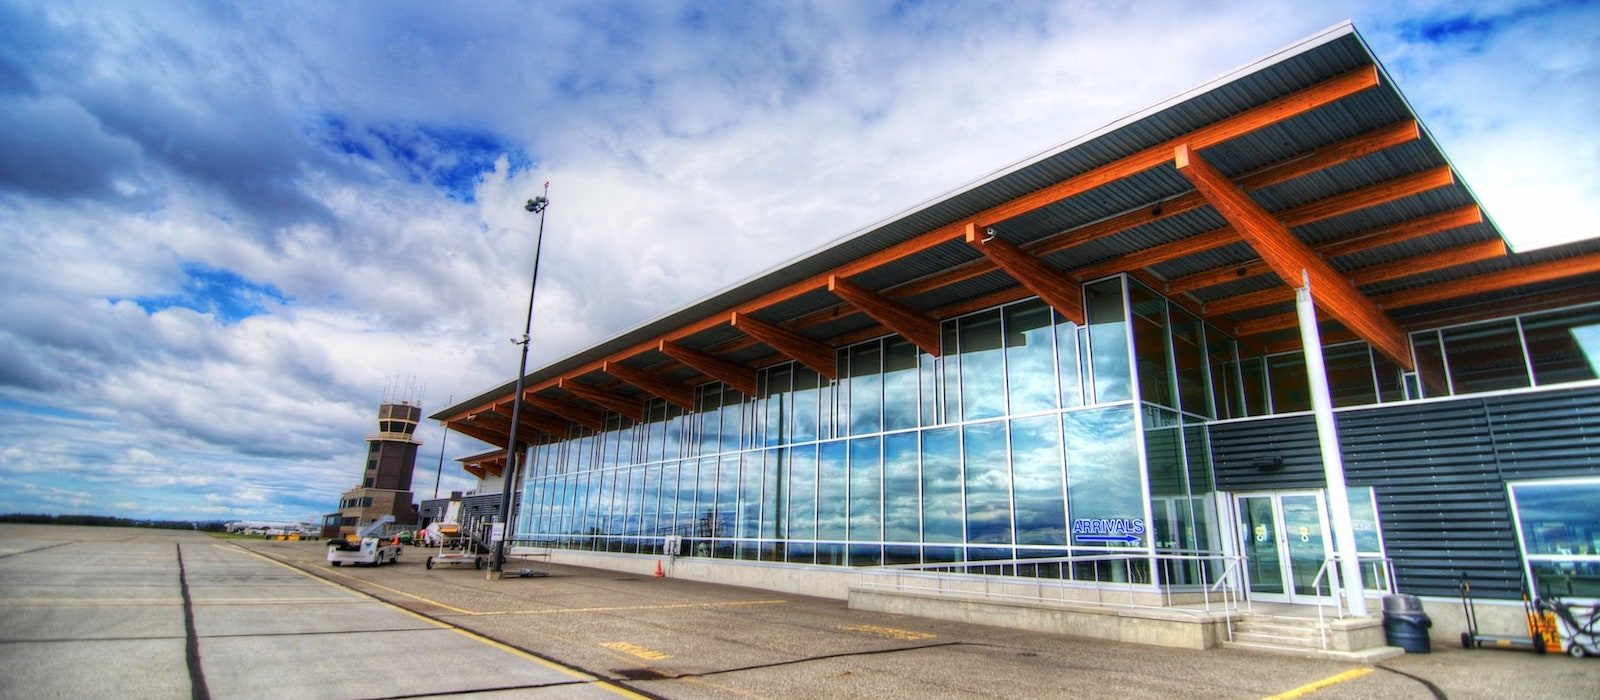 Exterior building of airport